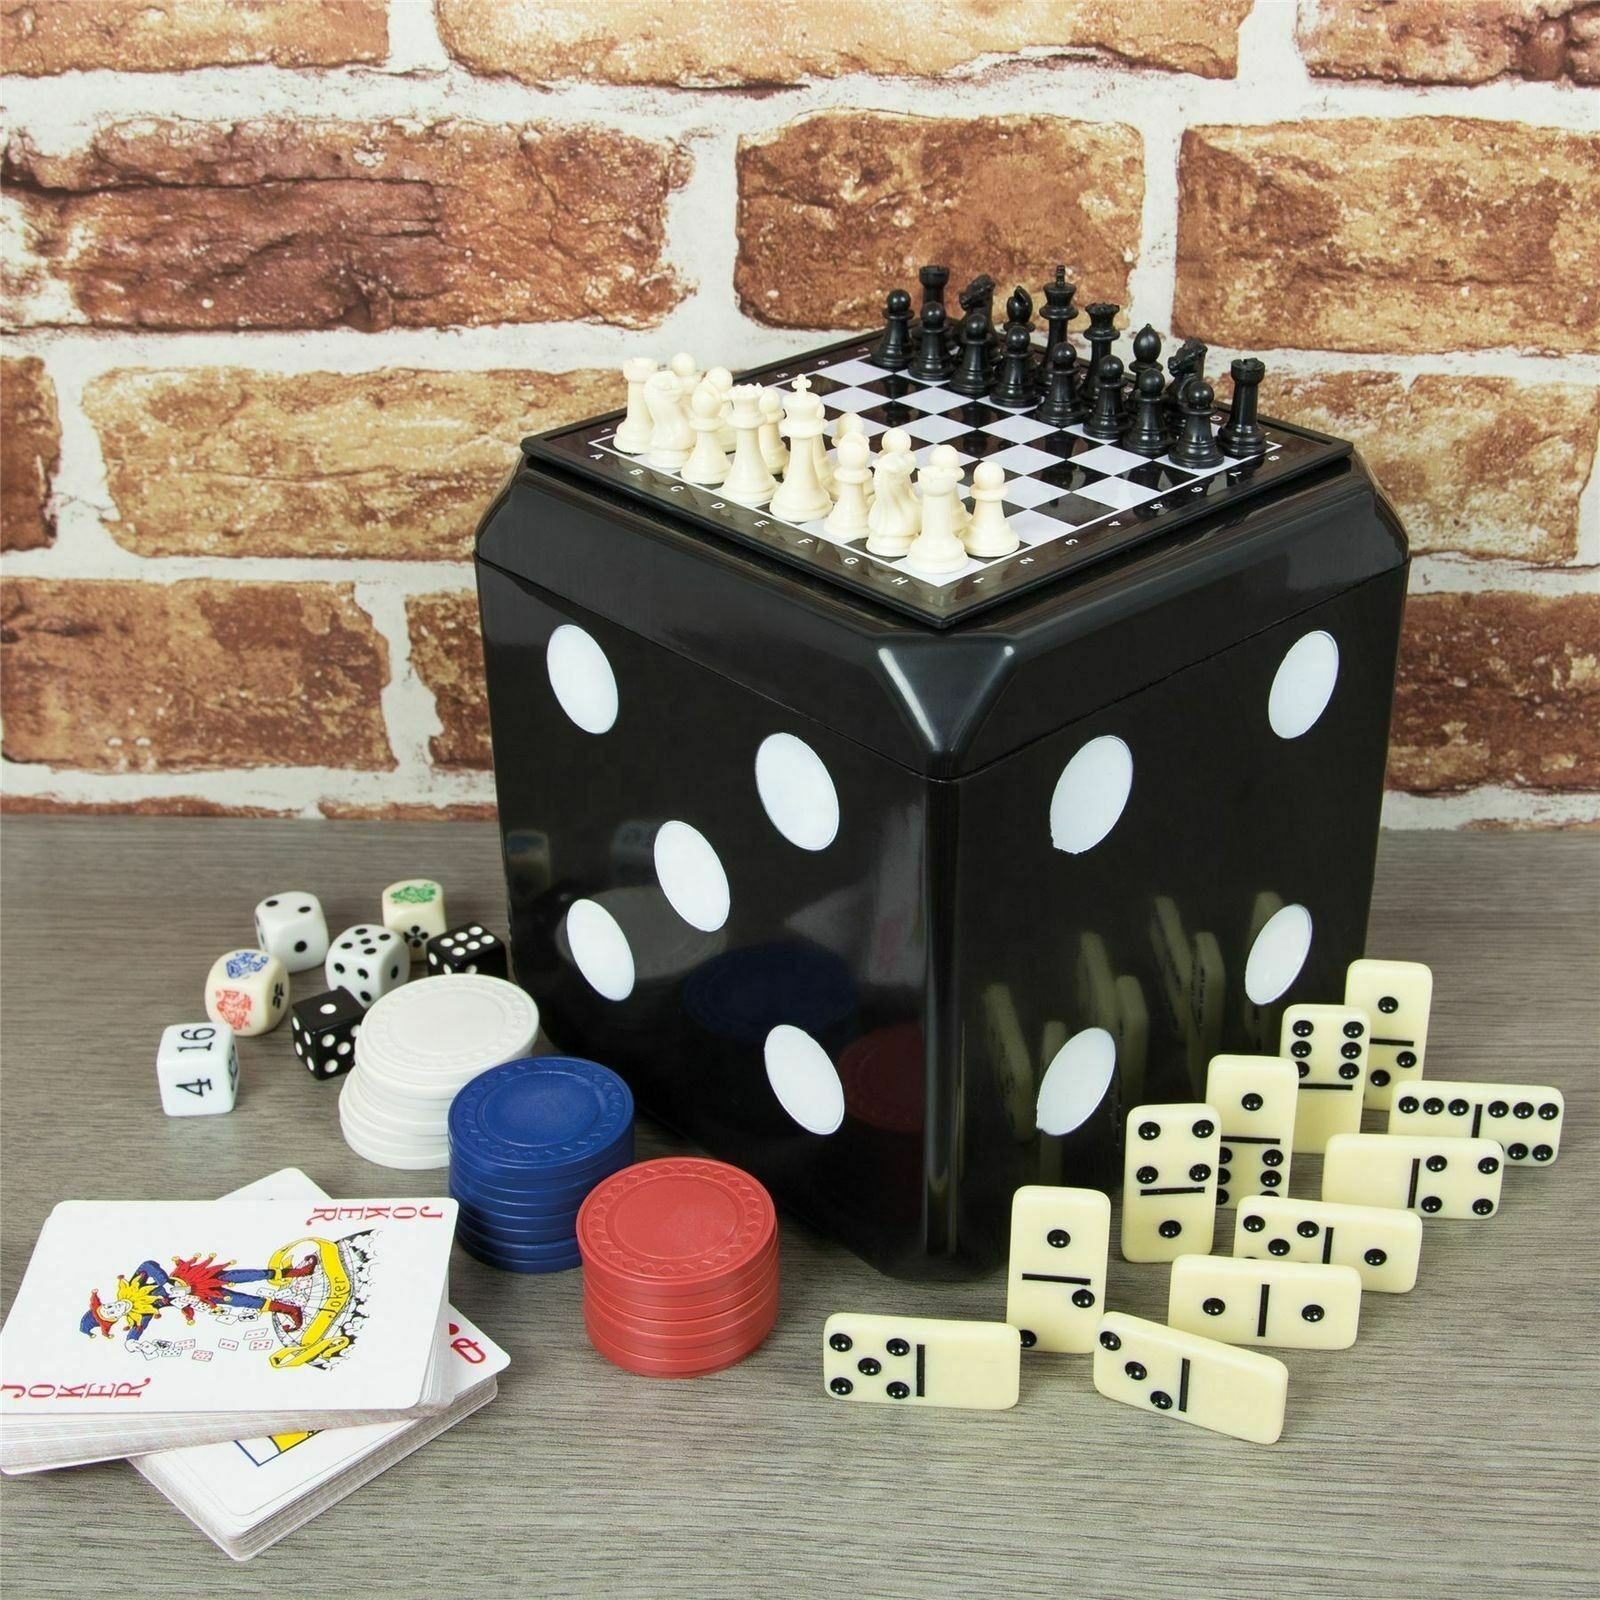 Multi Tafelblad Game-Schaken, Dammen, Backgammon,Poker Chips, Kaarten, domino Dobbelstenen Kubus Dobbelstenen Doos 6 In 1 Game Set